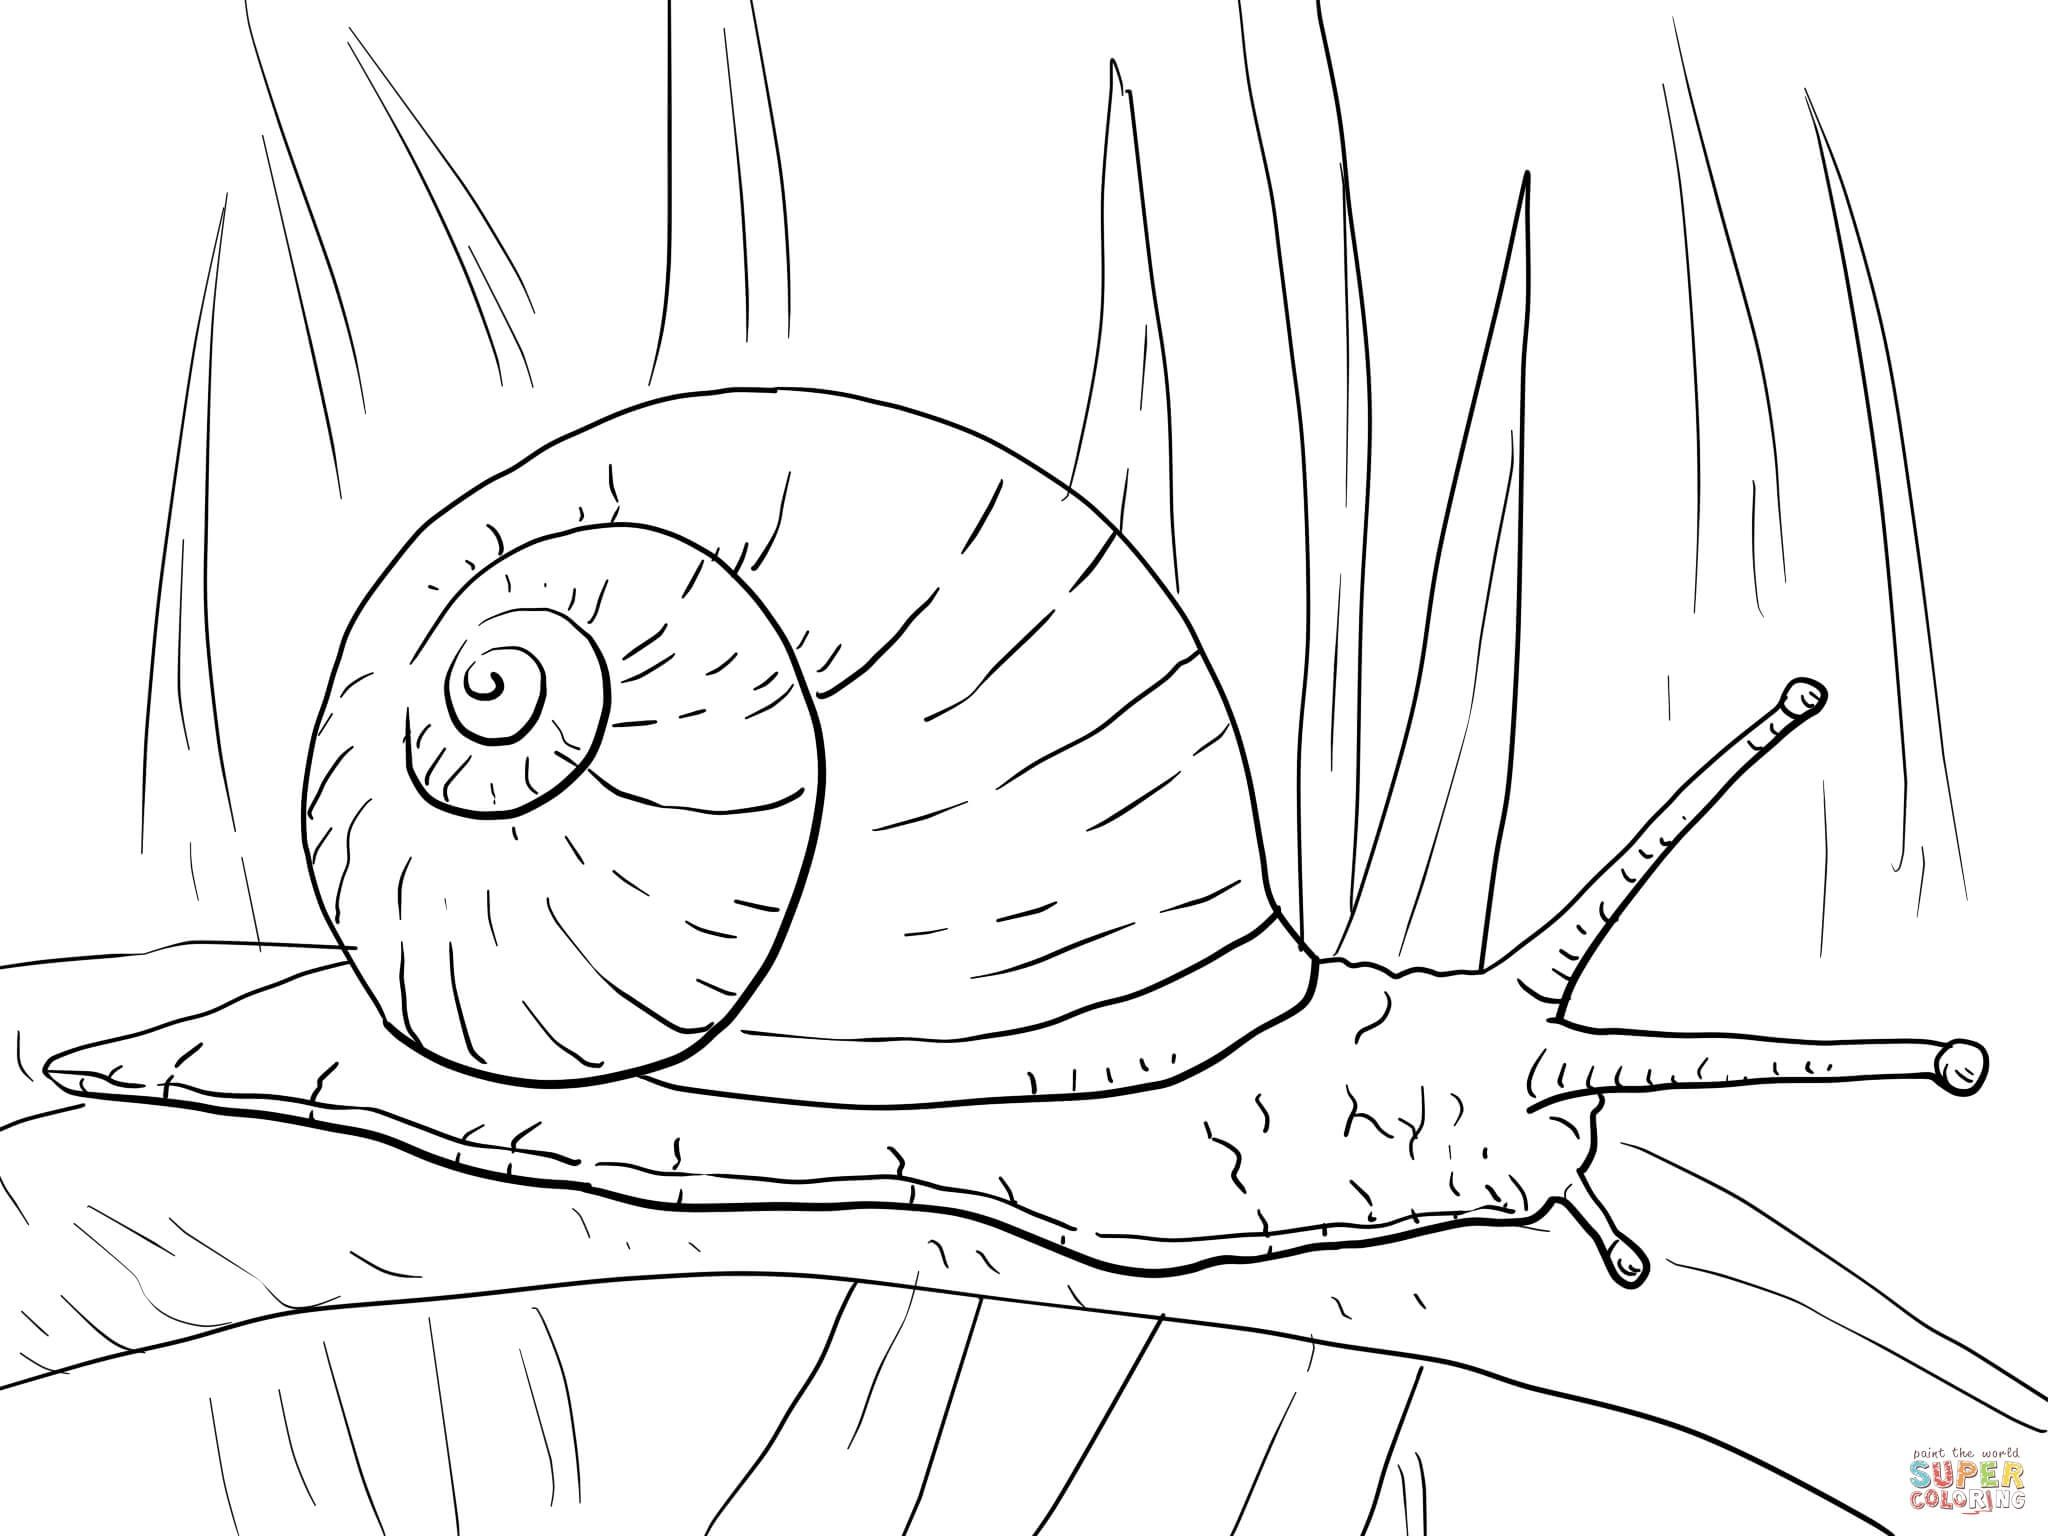 Writing Garden Snail Coloring Page Free Printable Coloring Pages Super Coloring Pages Snails In Garden Coloring Pages